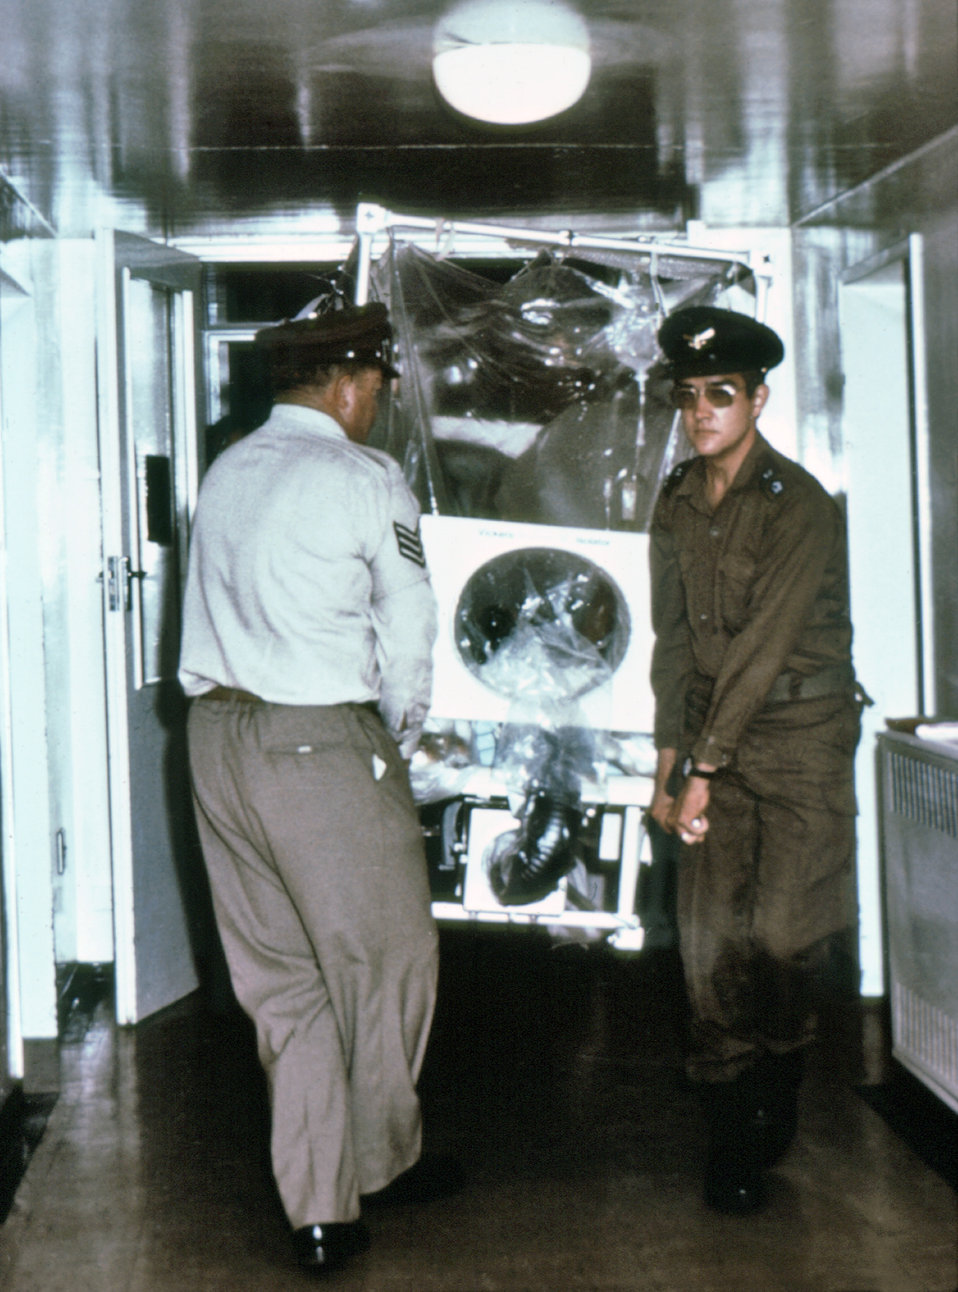 This 1976 photograph, taken inside the Johannesburg Fever Hospital, showed these South African Air Force personnel carrying an isolator unit